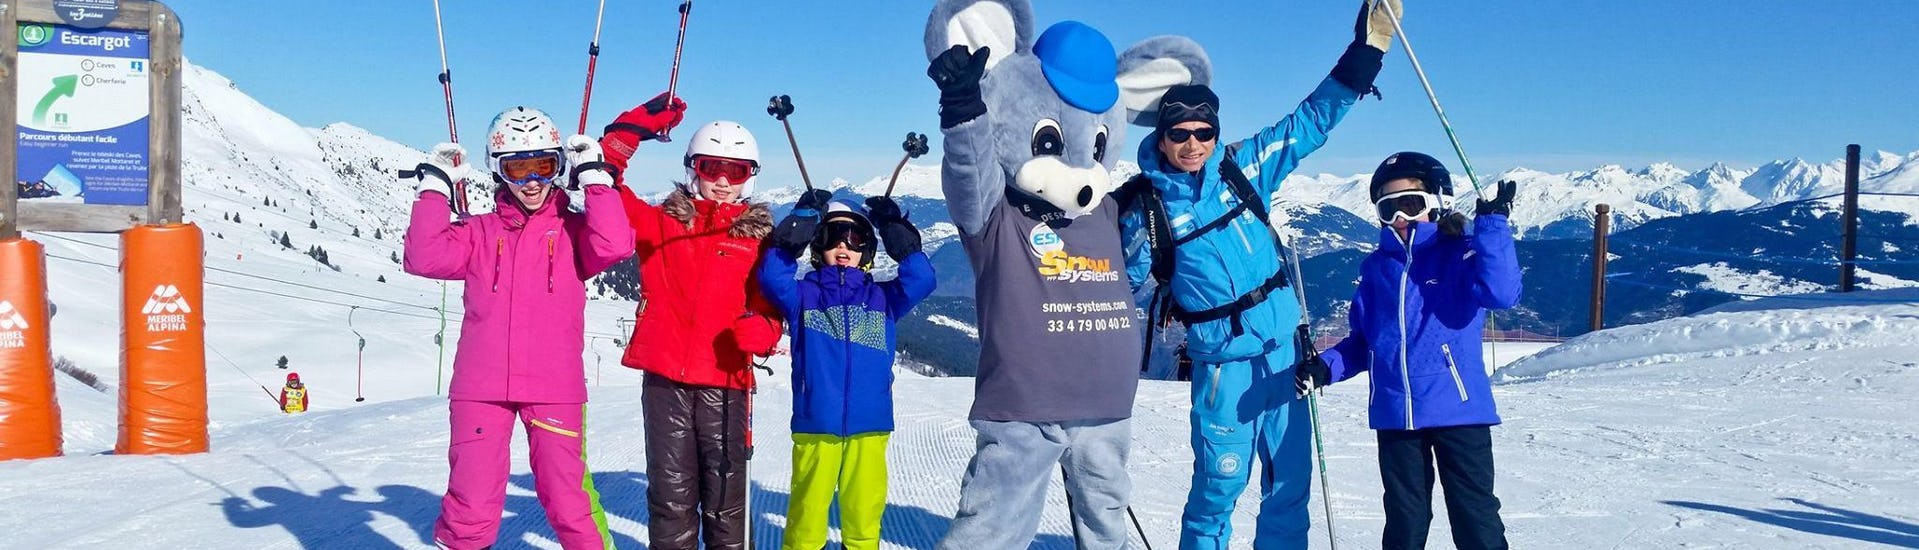 Ski Lessons for Kids (4-13 years) - Low Season - All Levels